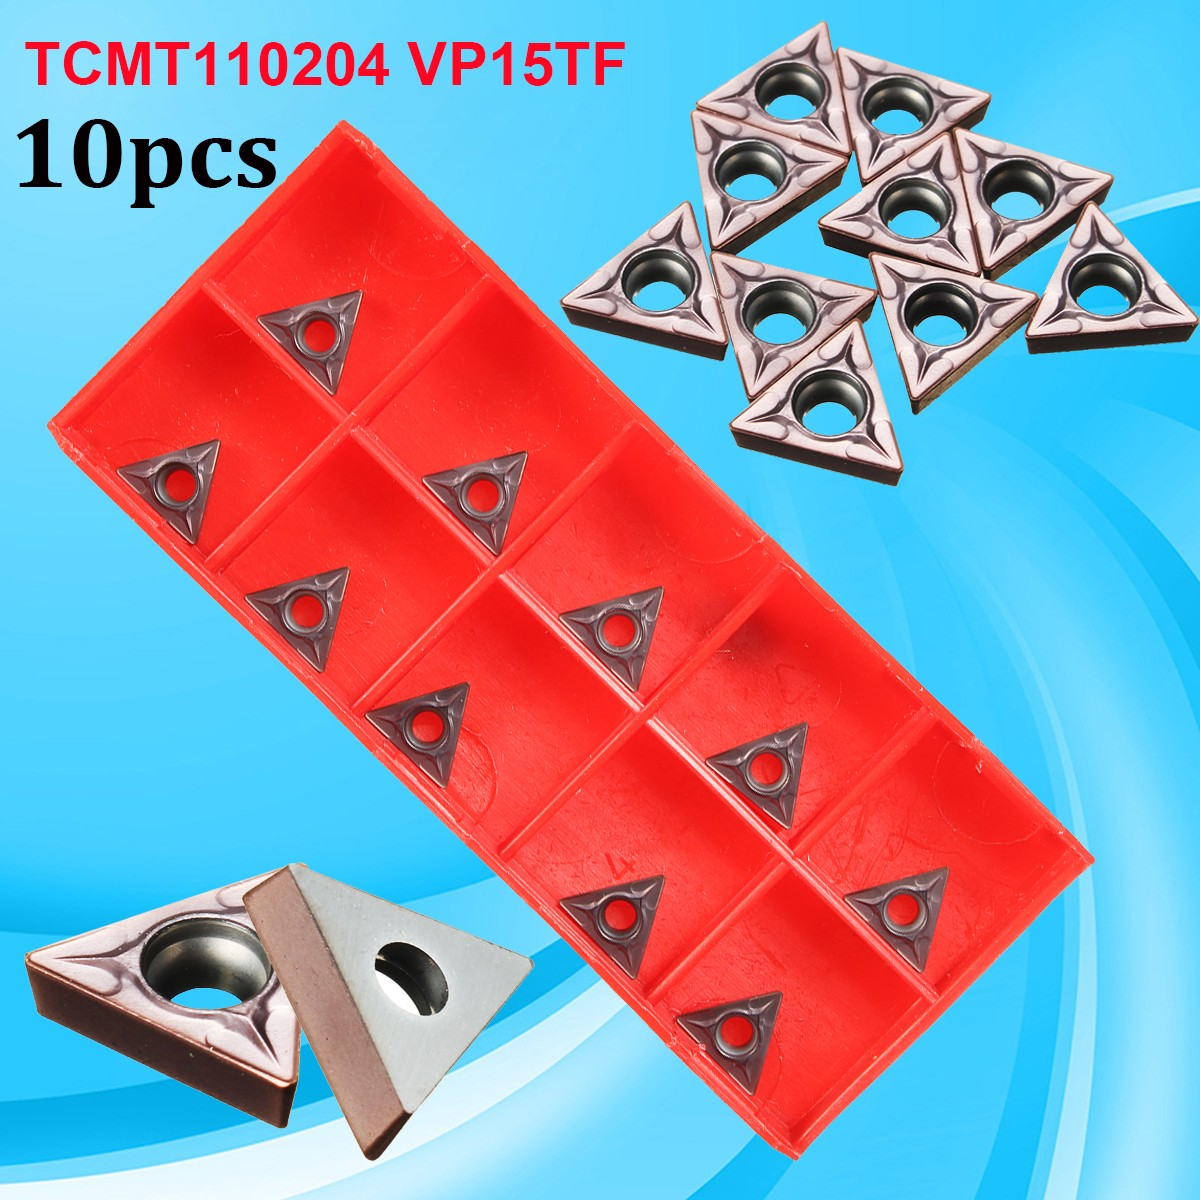 10pcs TCMT110204 VP15TF / TCMT21.51 Carbide Inserts CNC Blade Lathe Turning Tool(China)